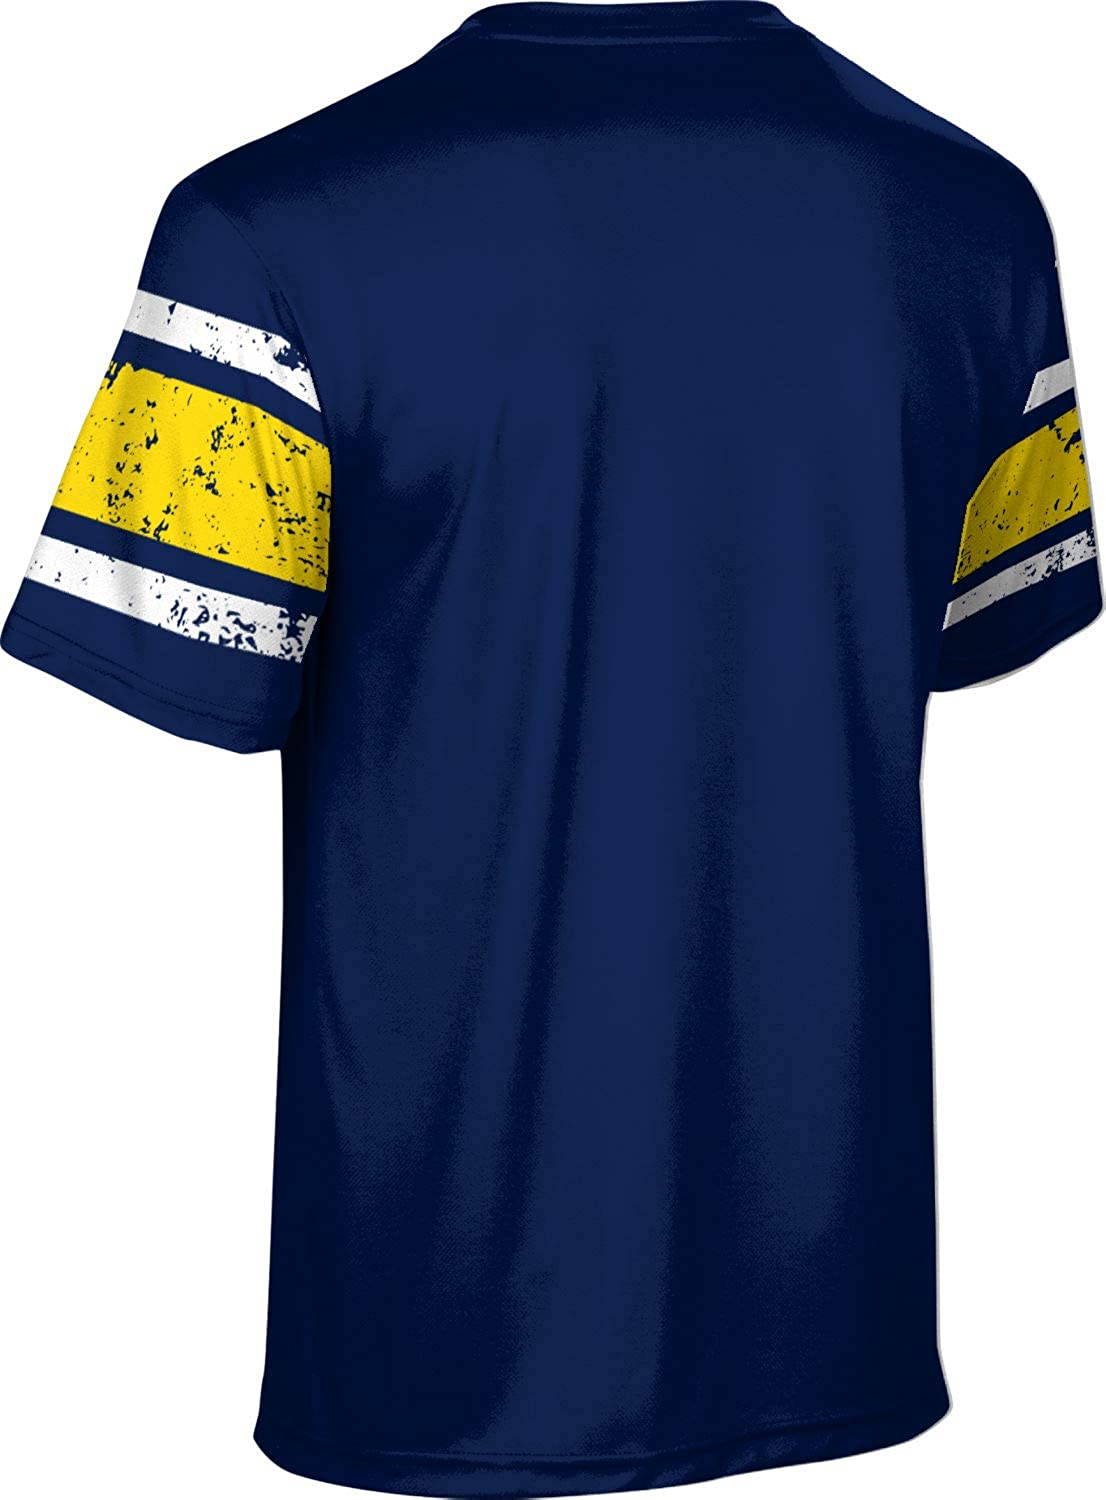 ProSphere Pace University Boys Performance T-Shirt End Zone